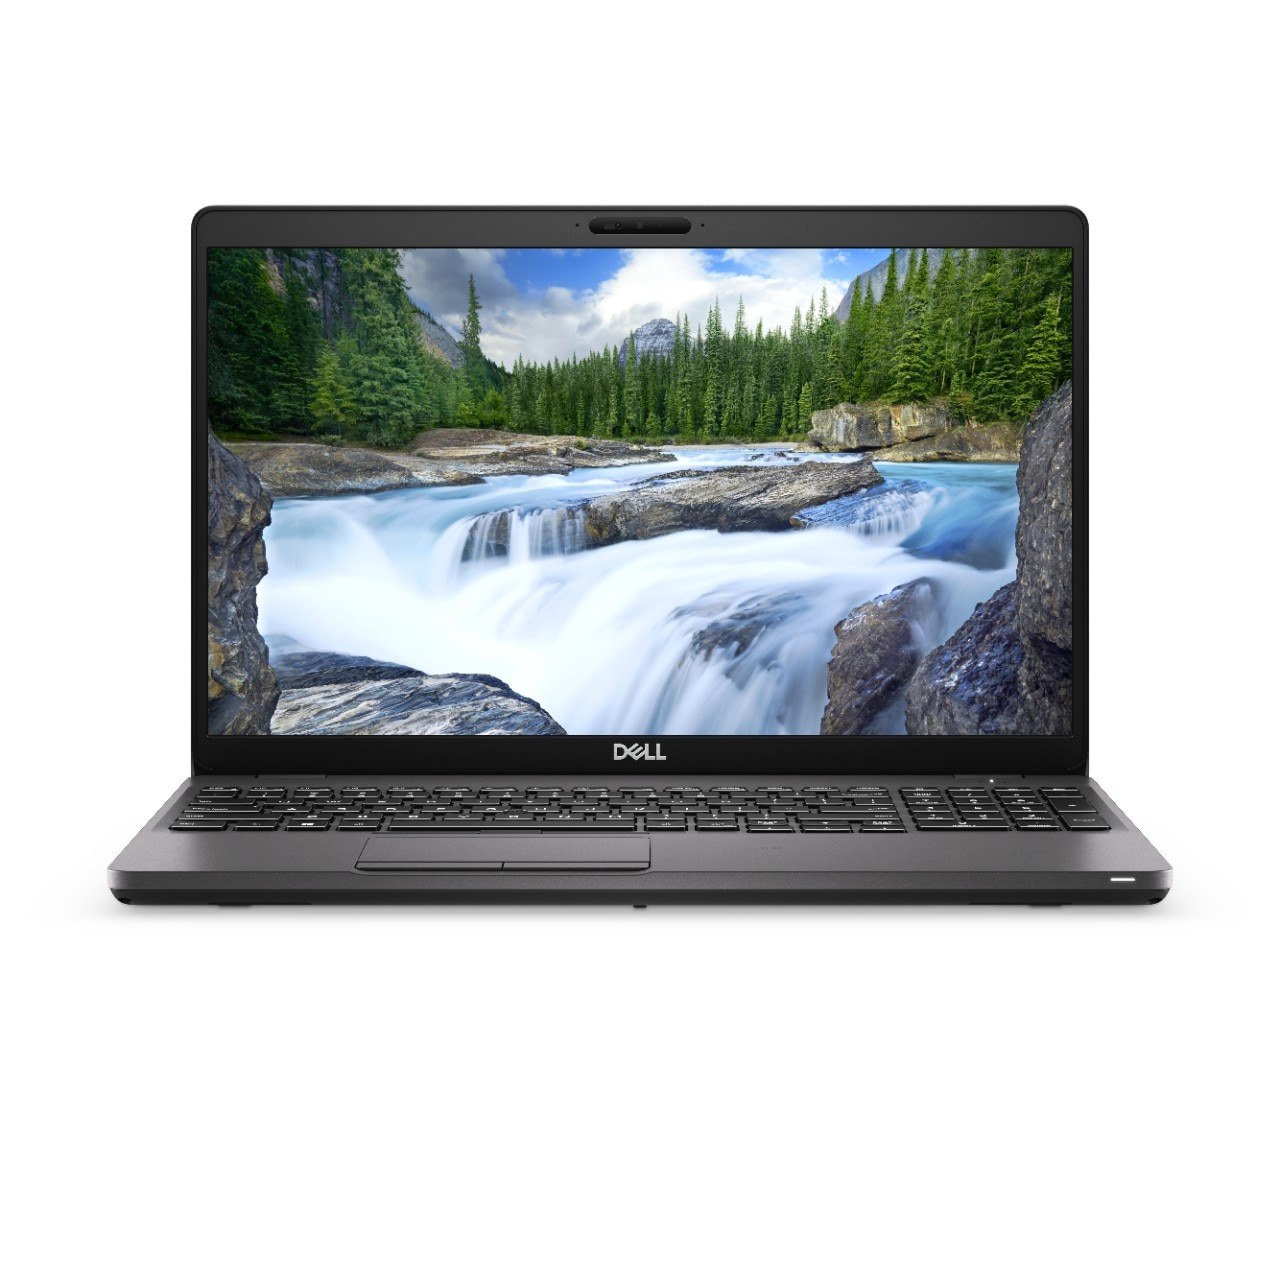 Latitude 15 - 5500 Laptop